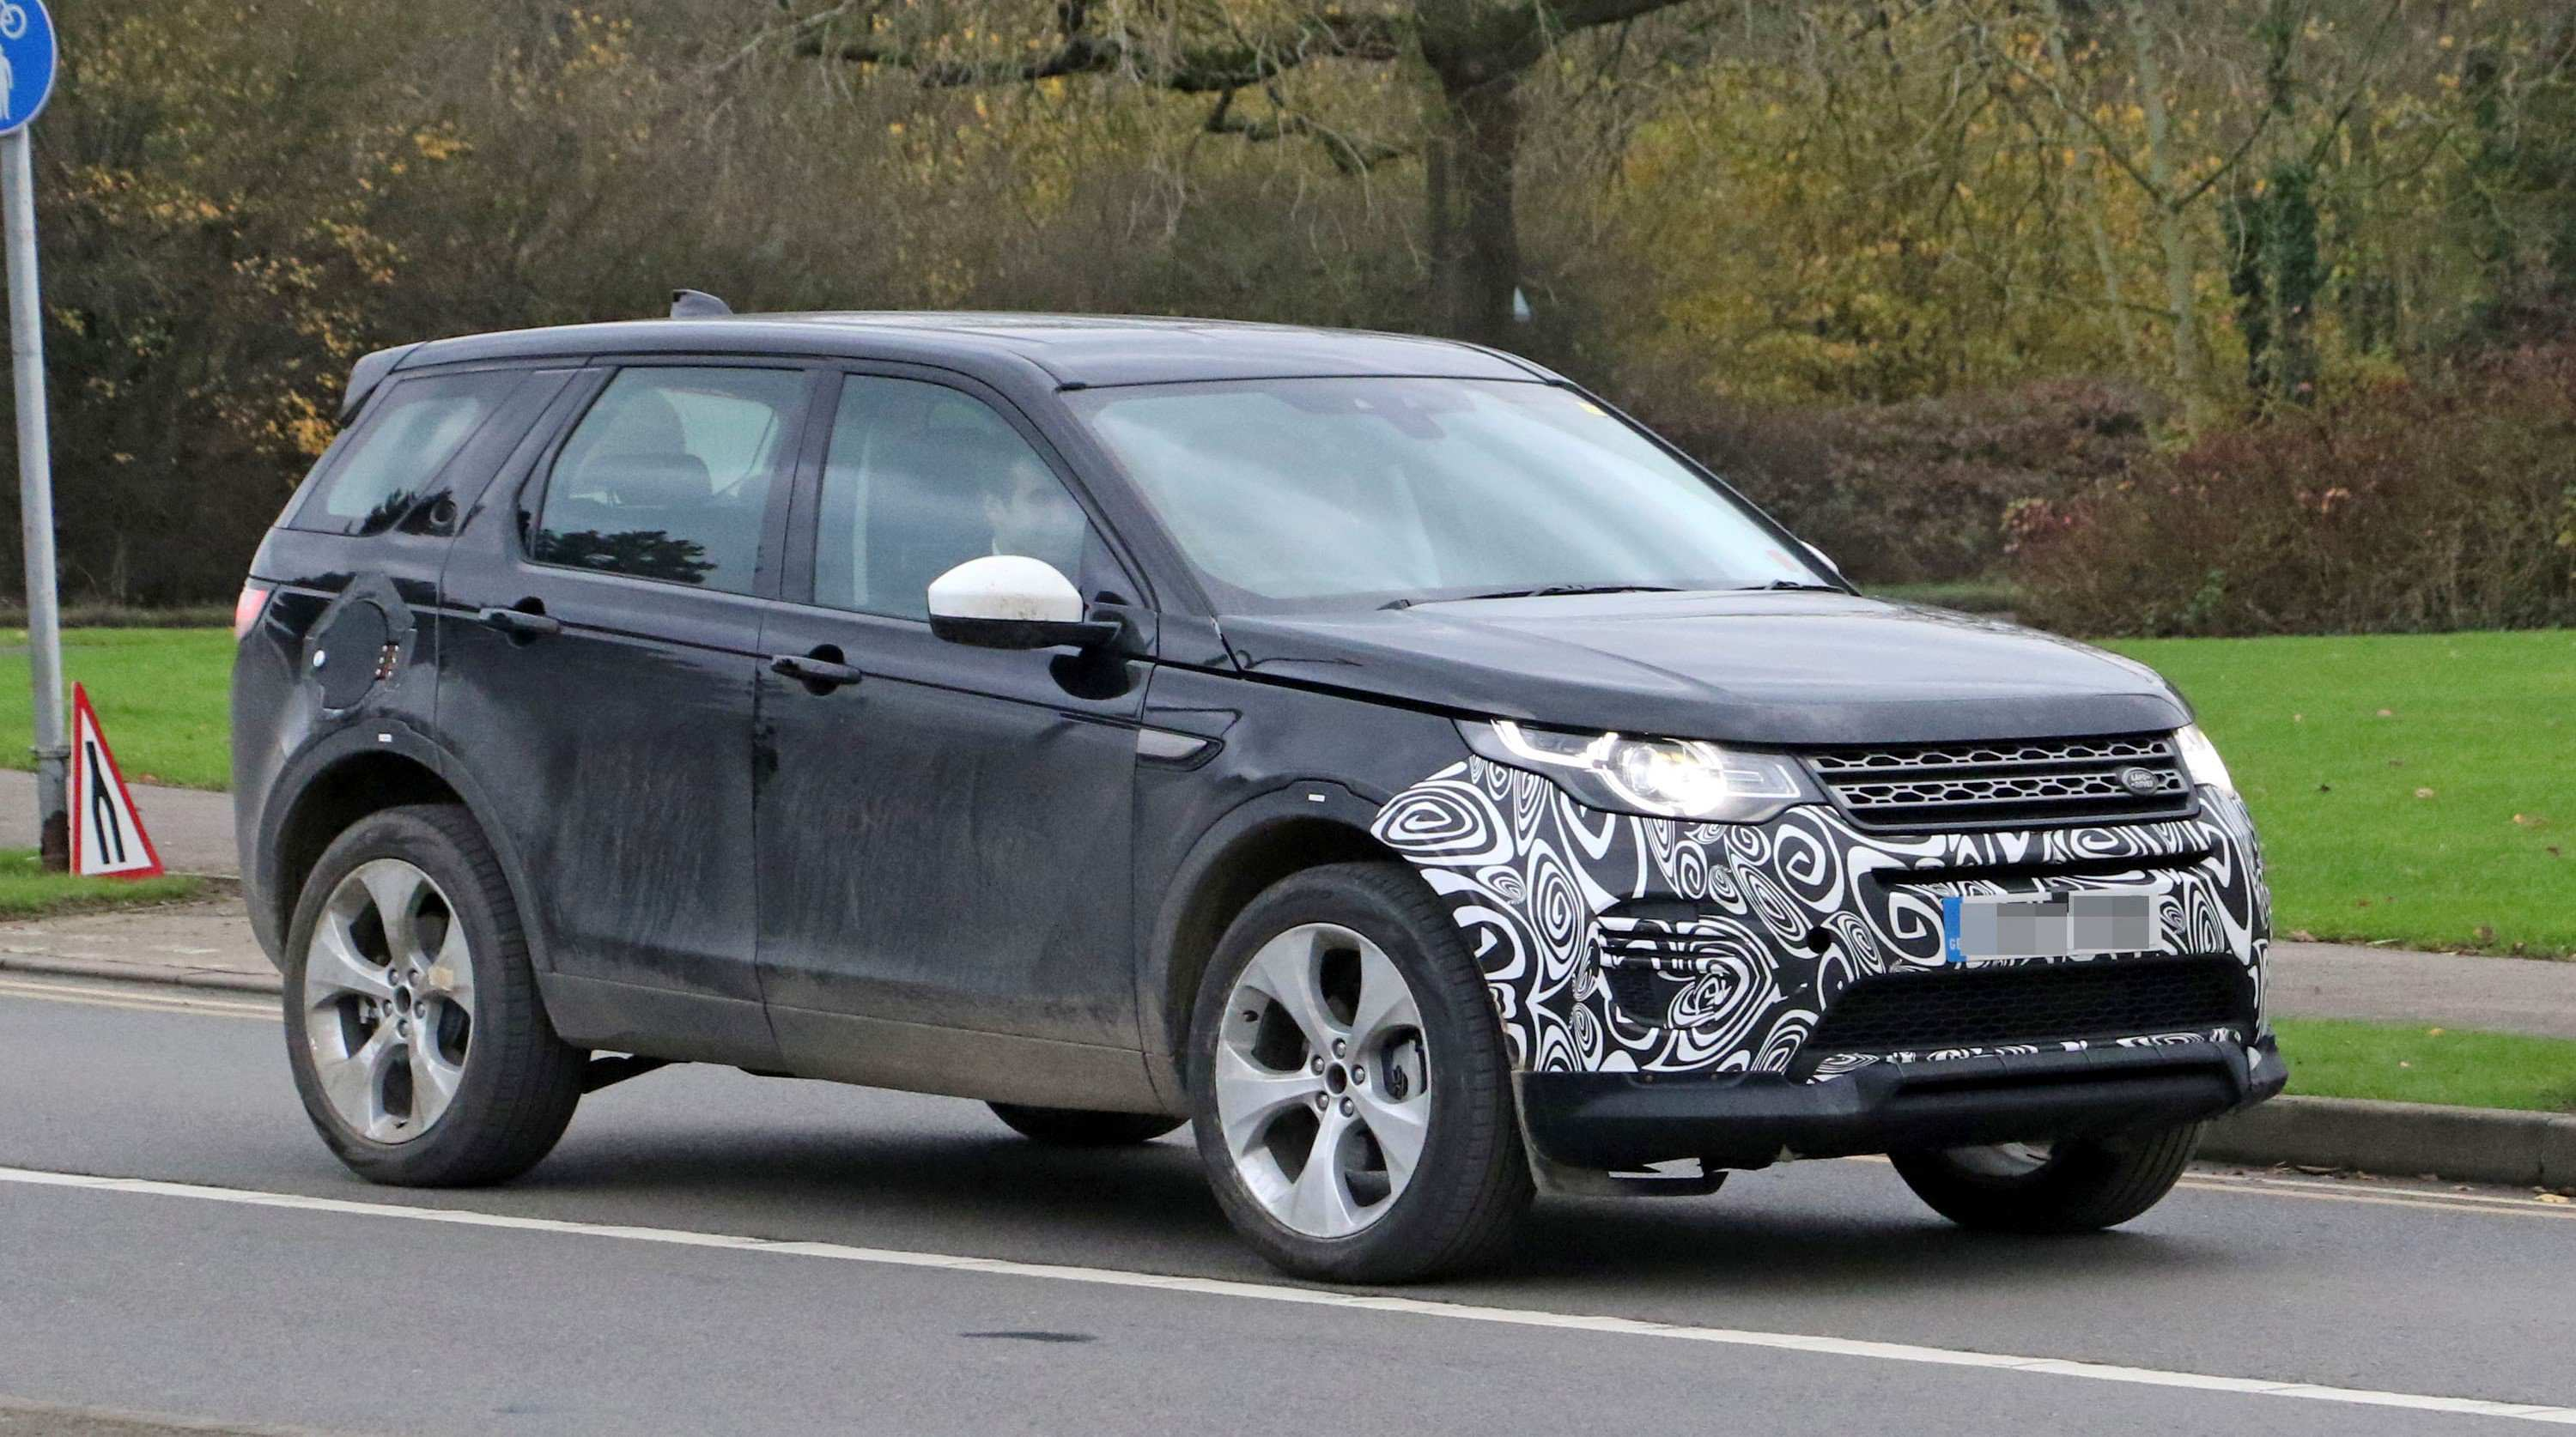 70 The 2020 Land Rover Discovery Sport Price